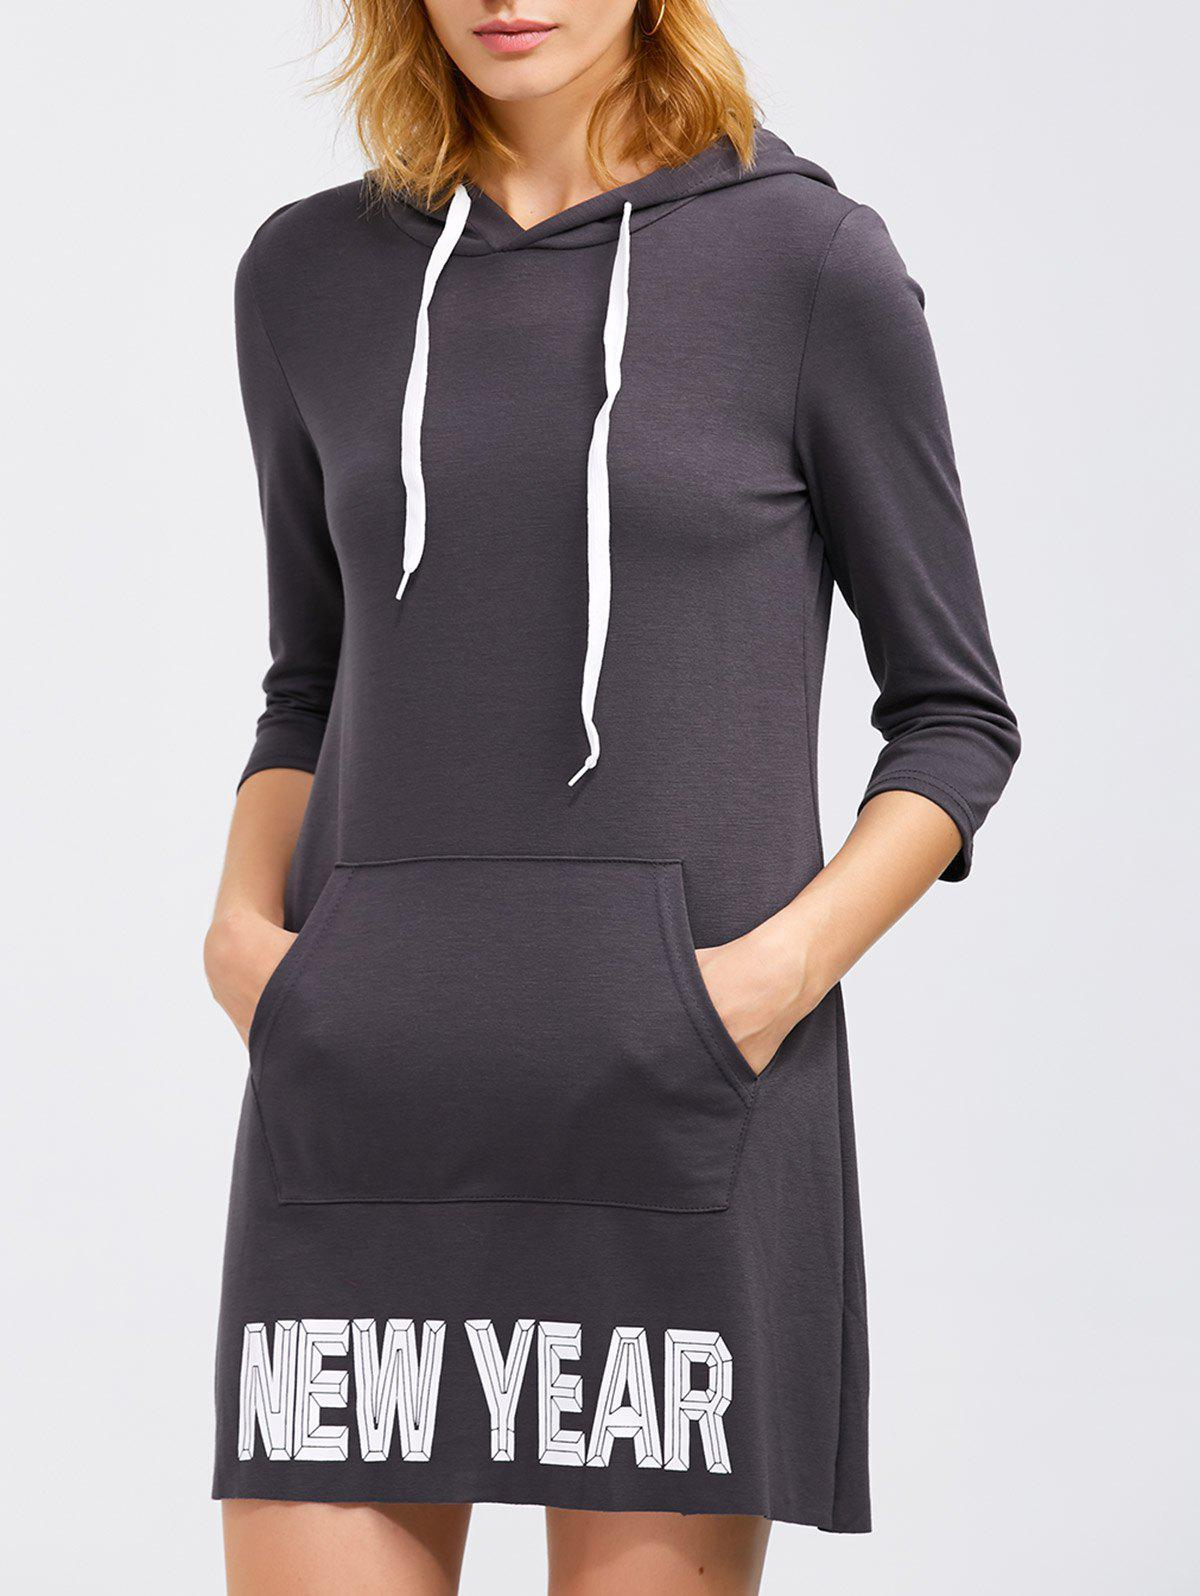 Chic New Year Drawstring Hoodie Dress With Pocket